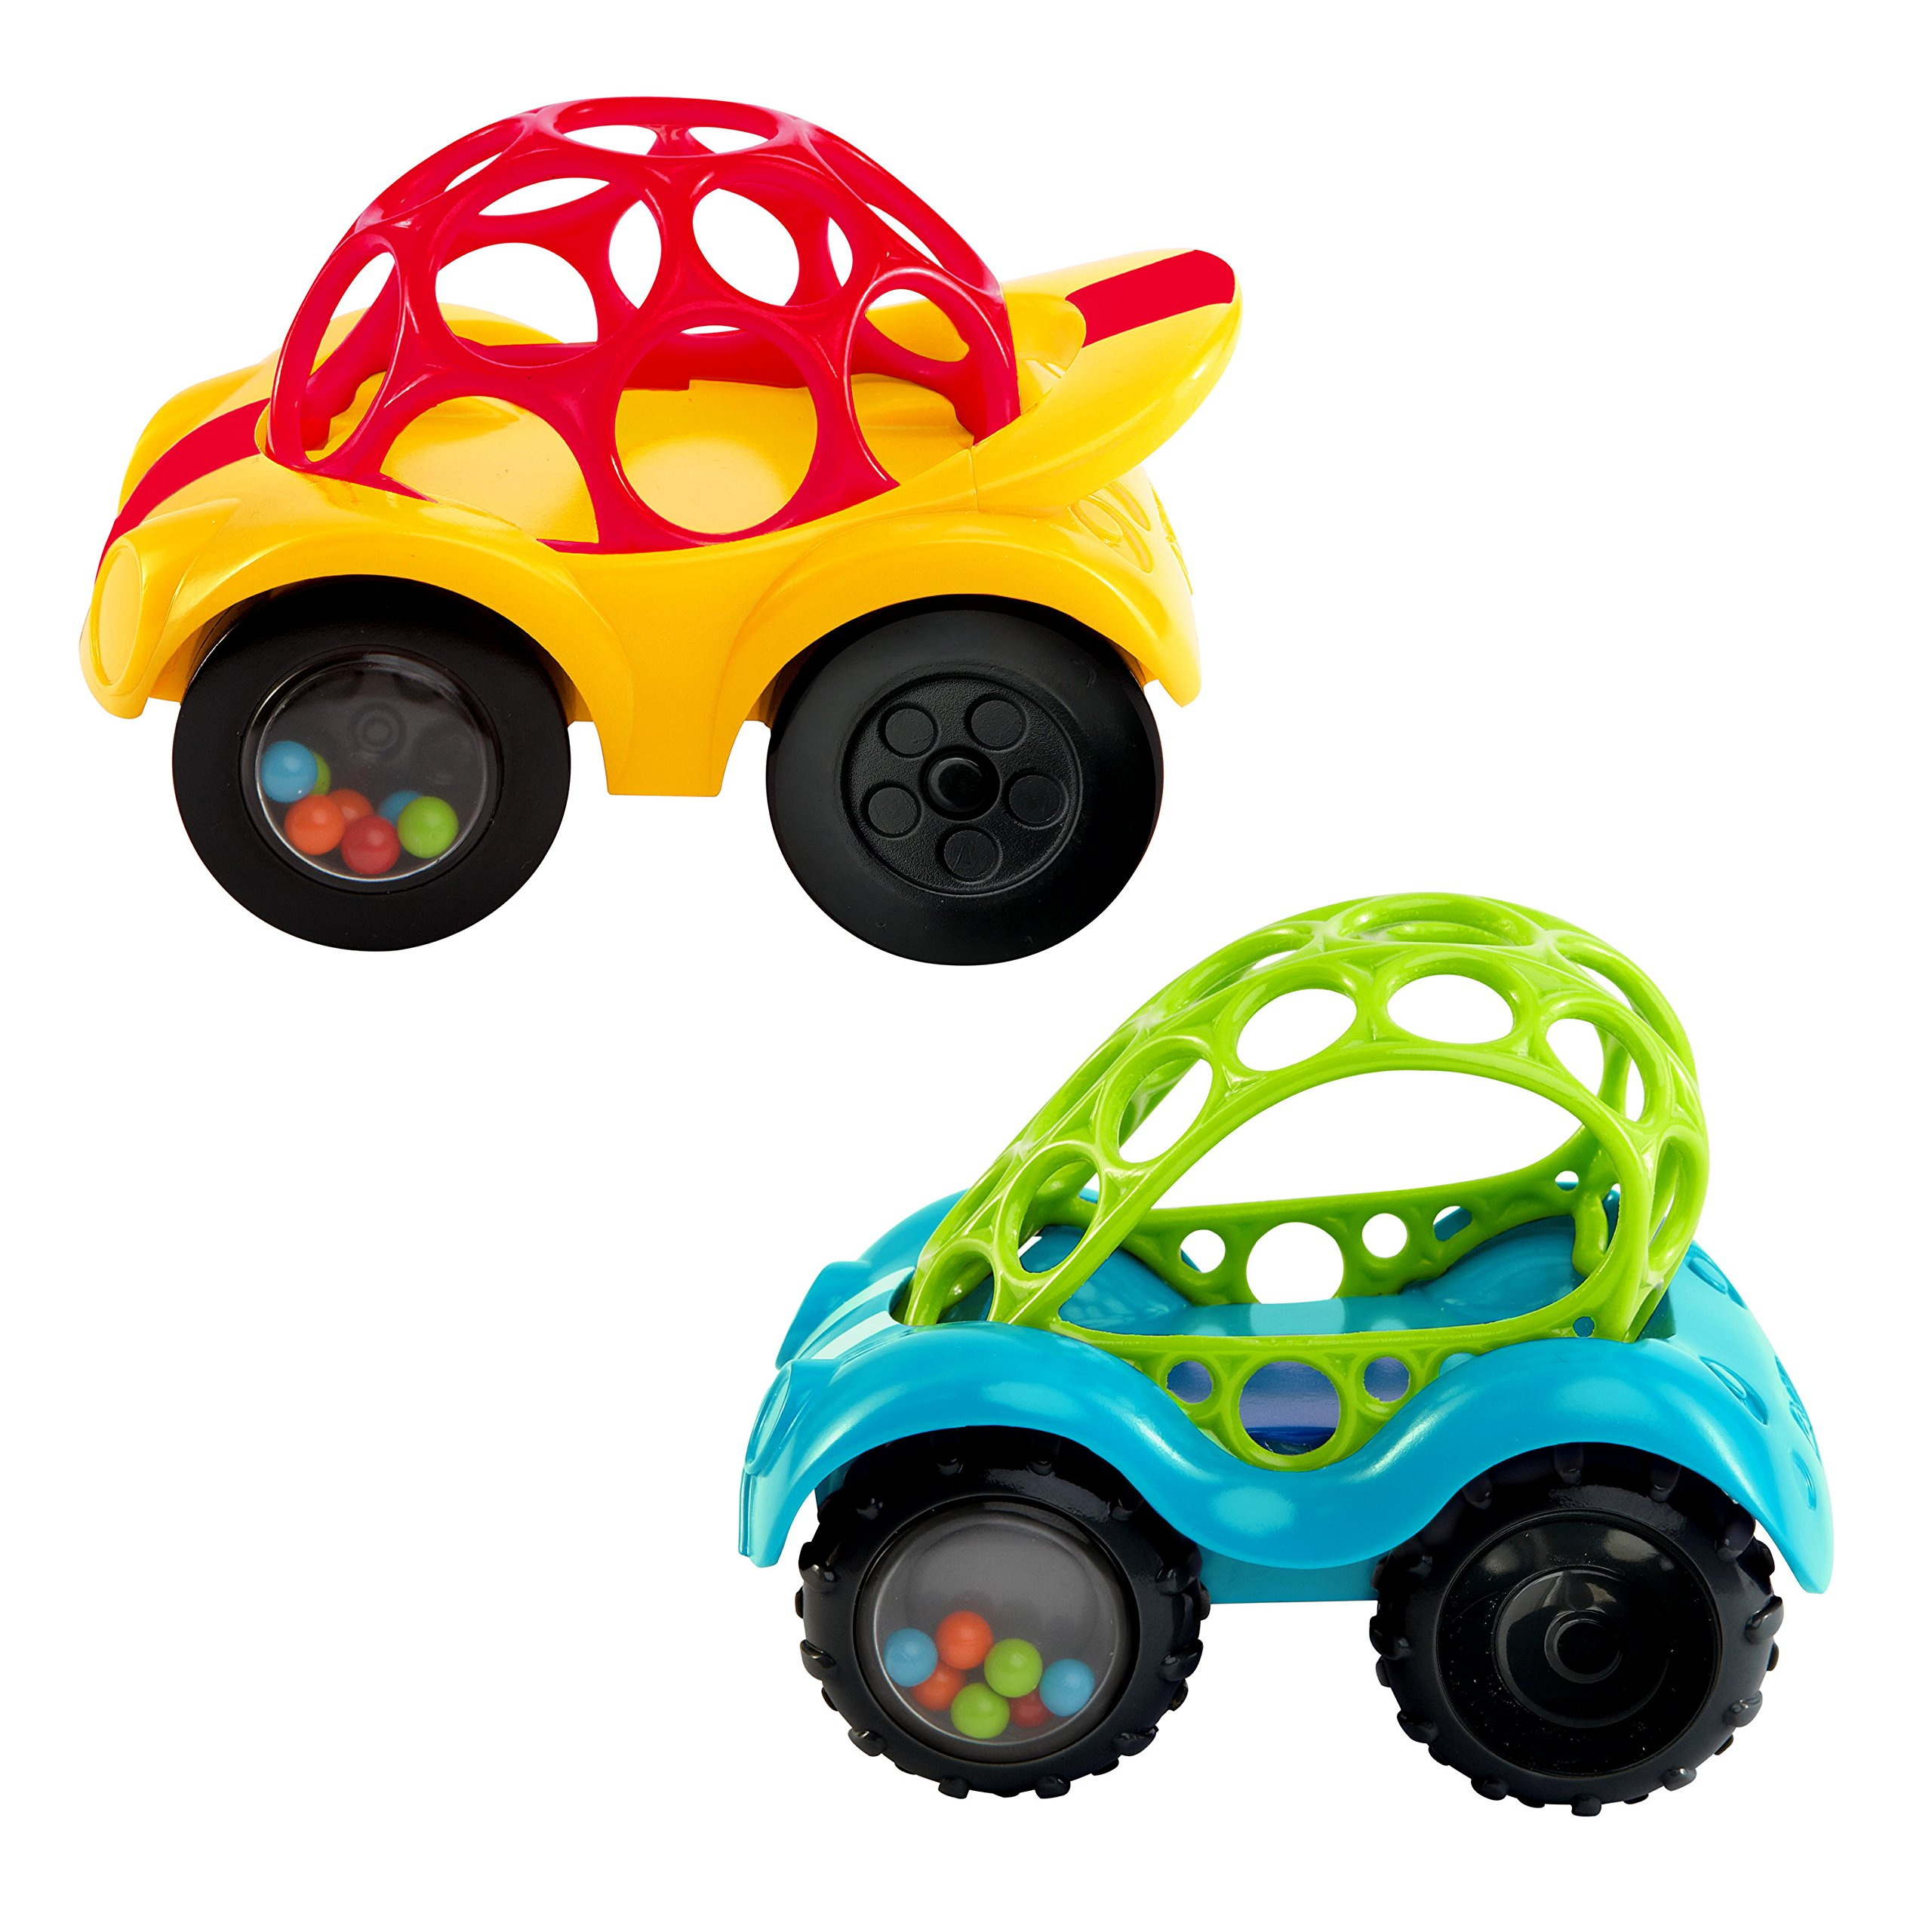 Bright Starts O Ball 1-Piece Rattle & Roll Car, Assorted Colors by Bright Starts